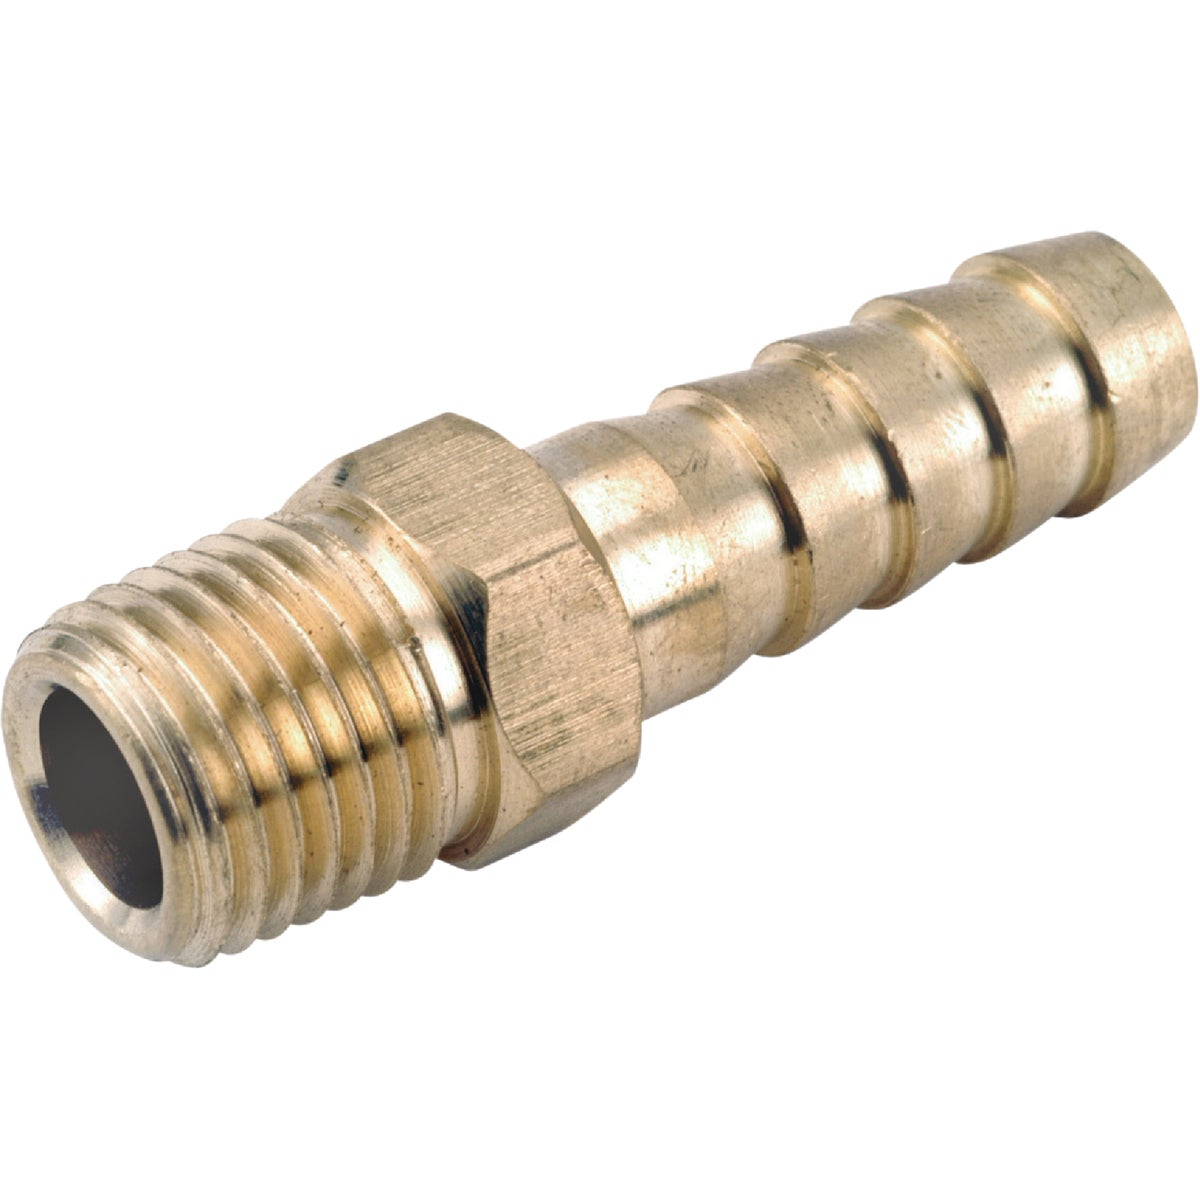 3/8IDX1/4MPT HOSE BARB - 757001-0604 by Anderson Metals Corp